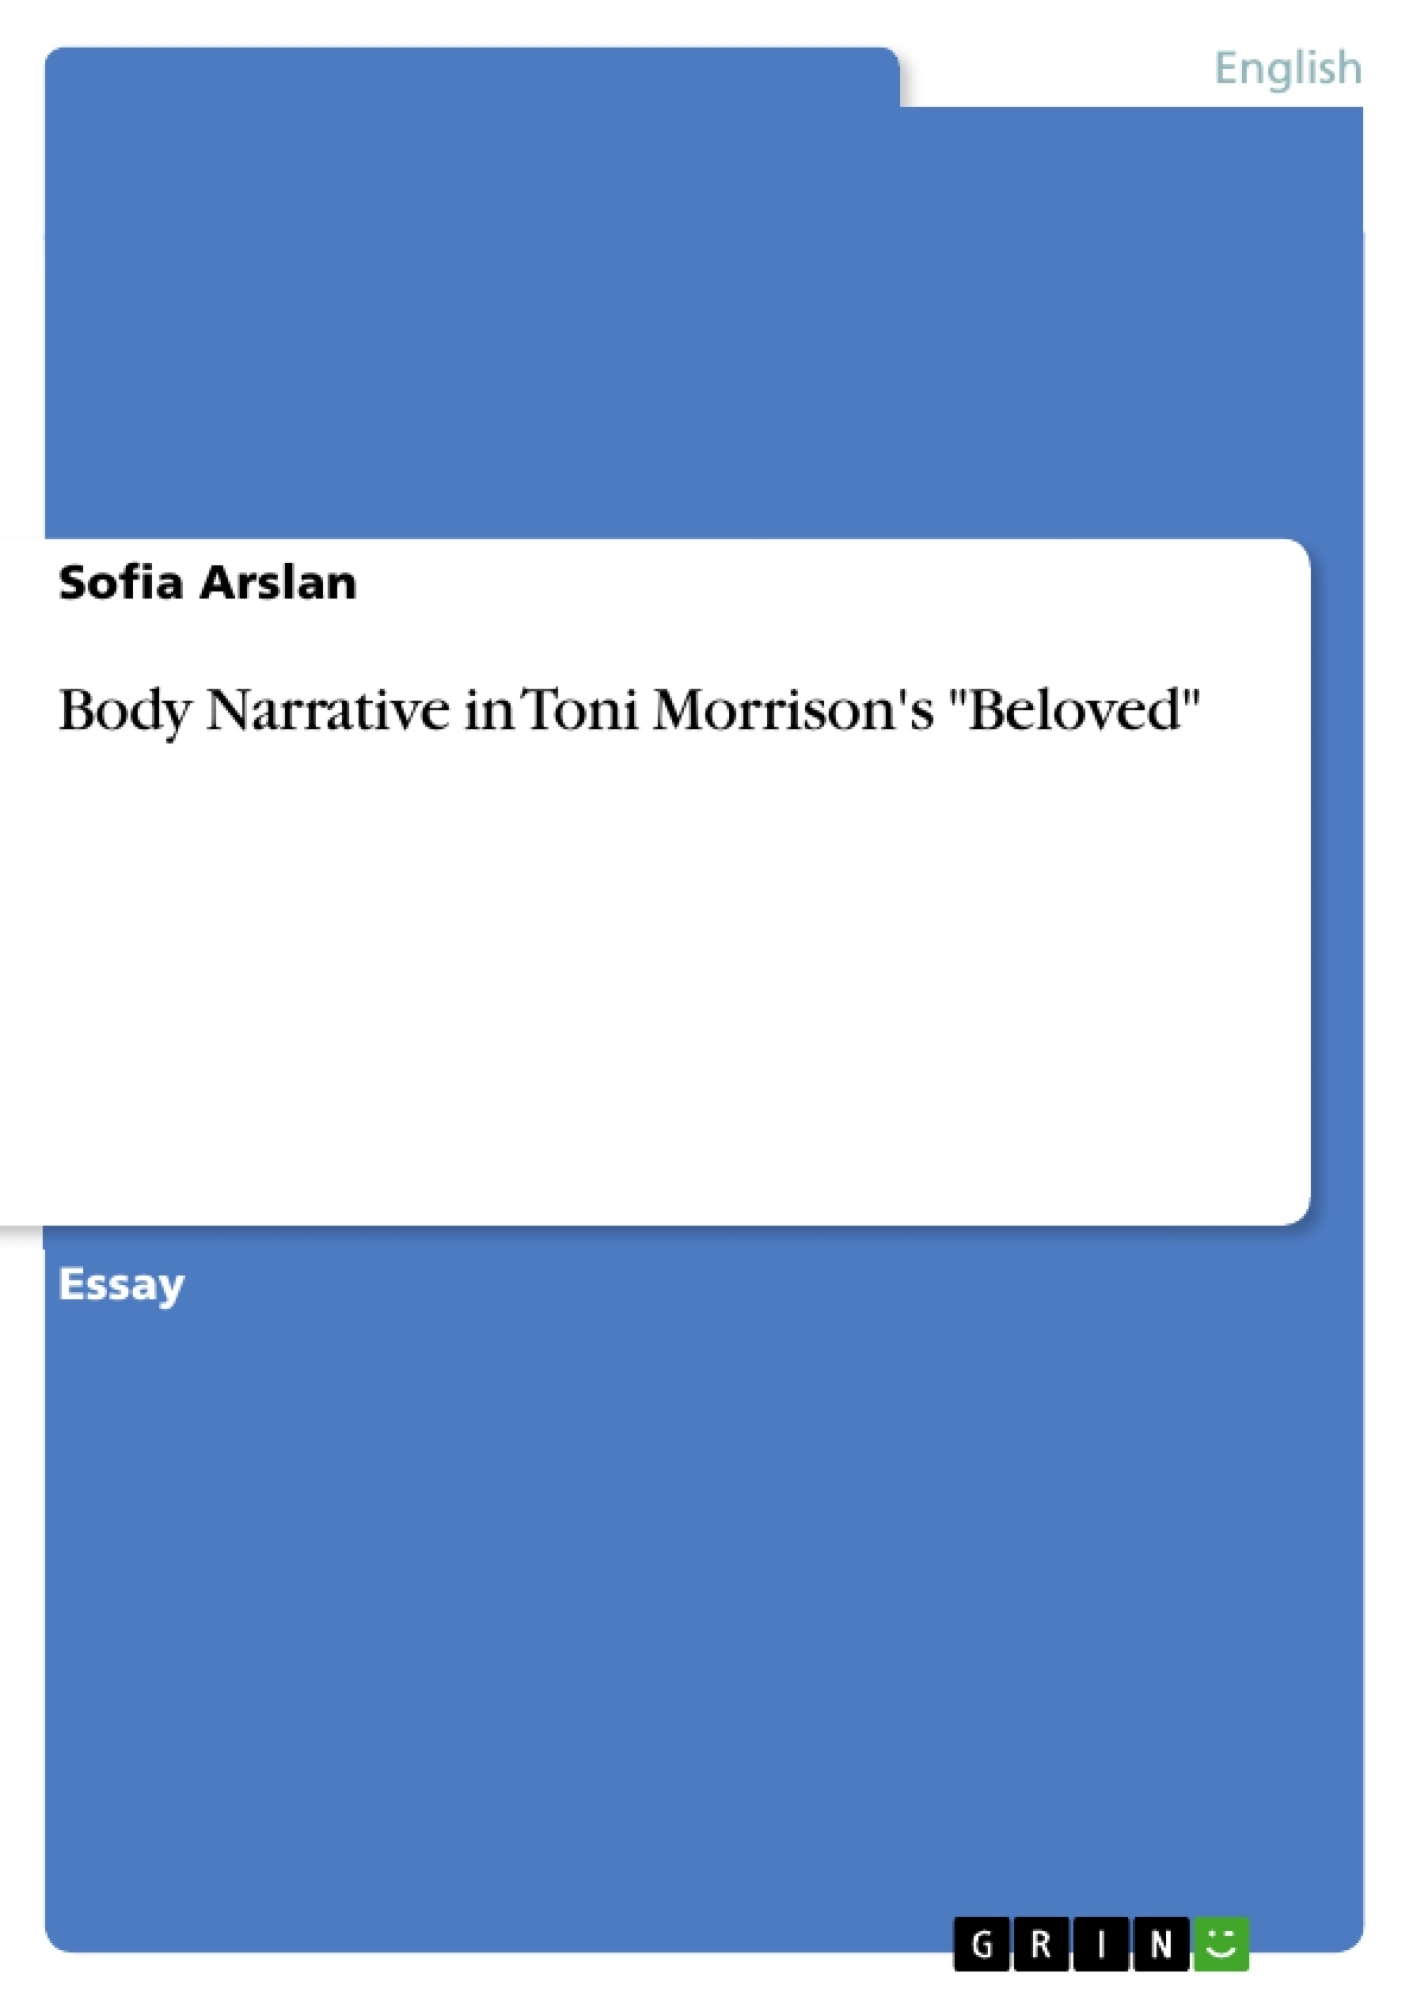 beloved essay critical essays on beloved beloved critical essays  body narrative in toni morrison s beloved publish your upload your own papers earn money and